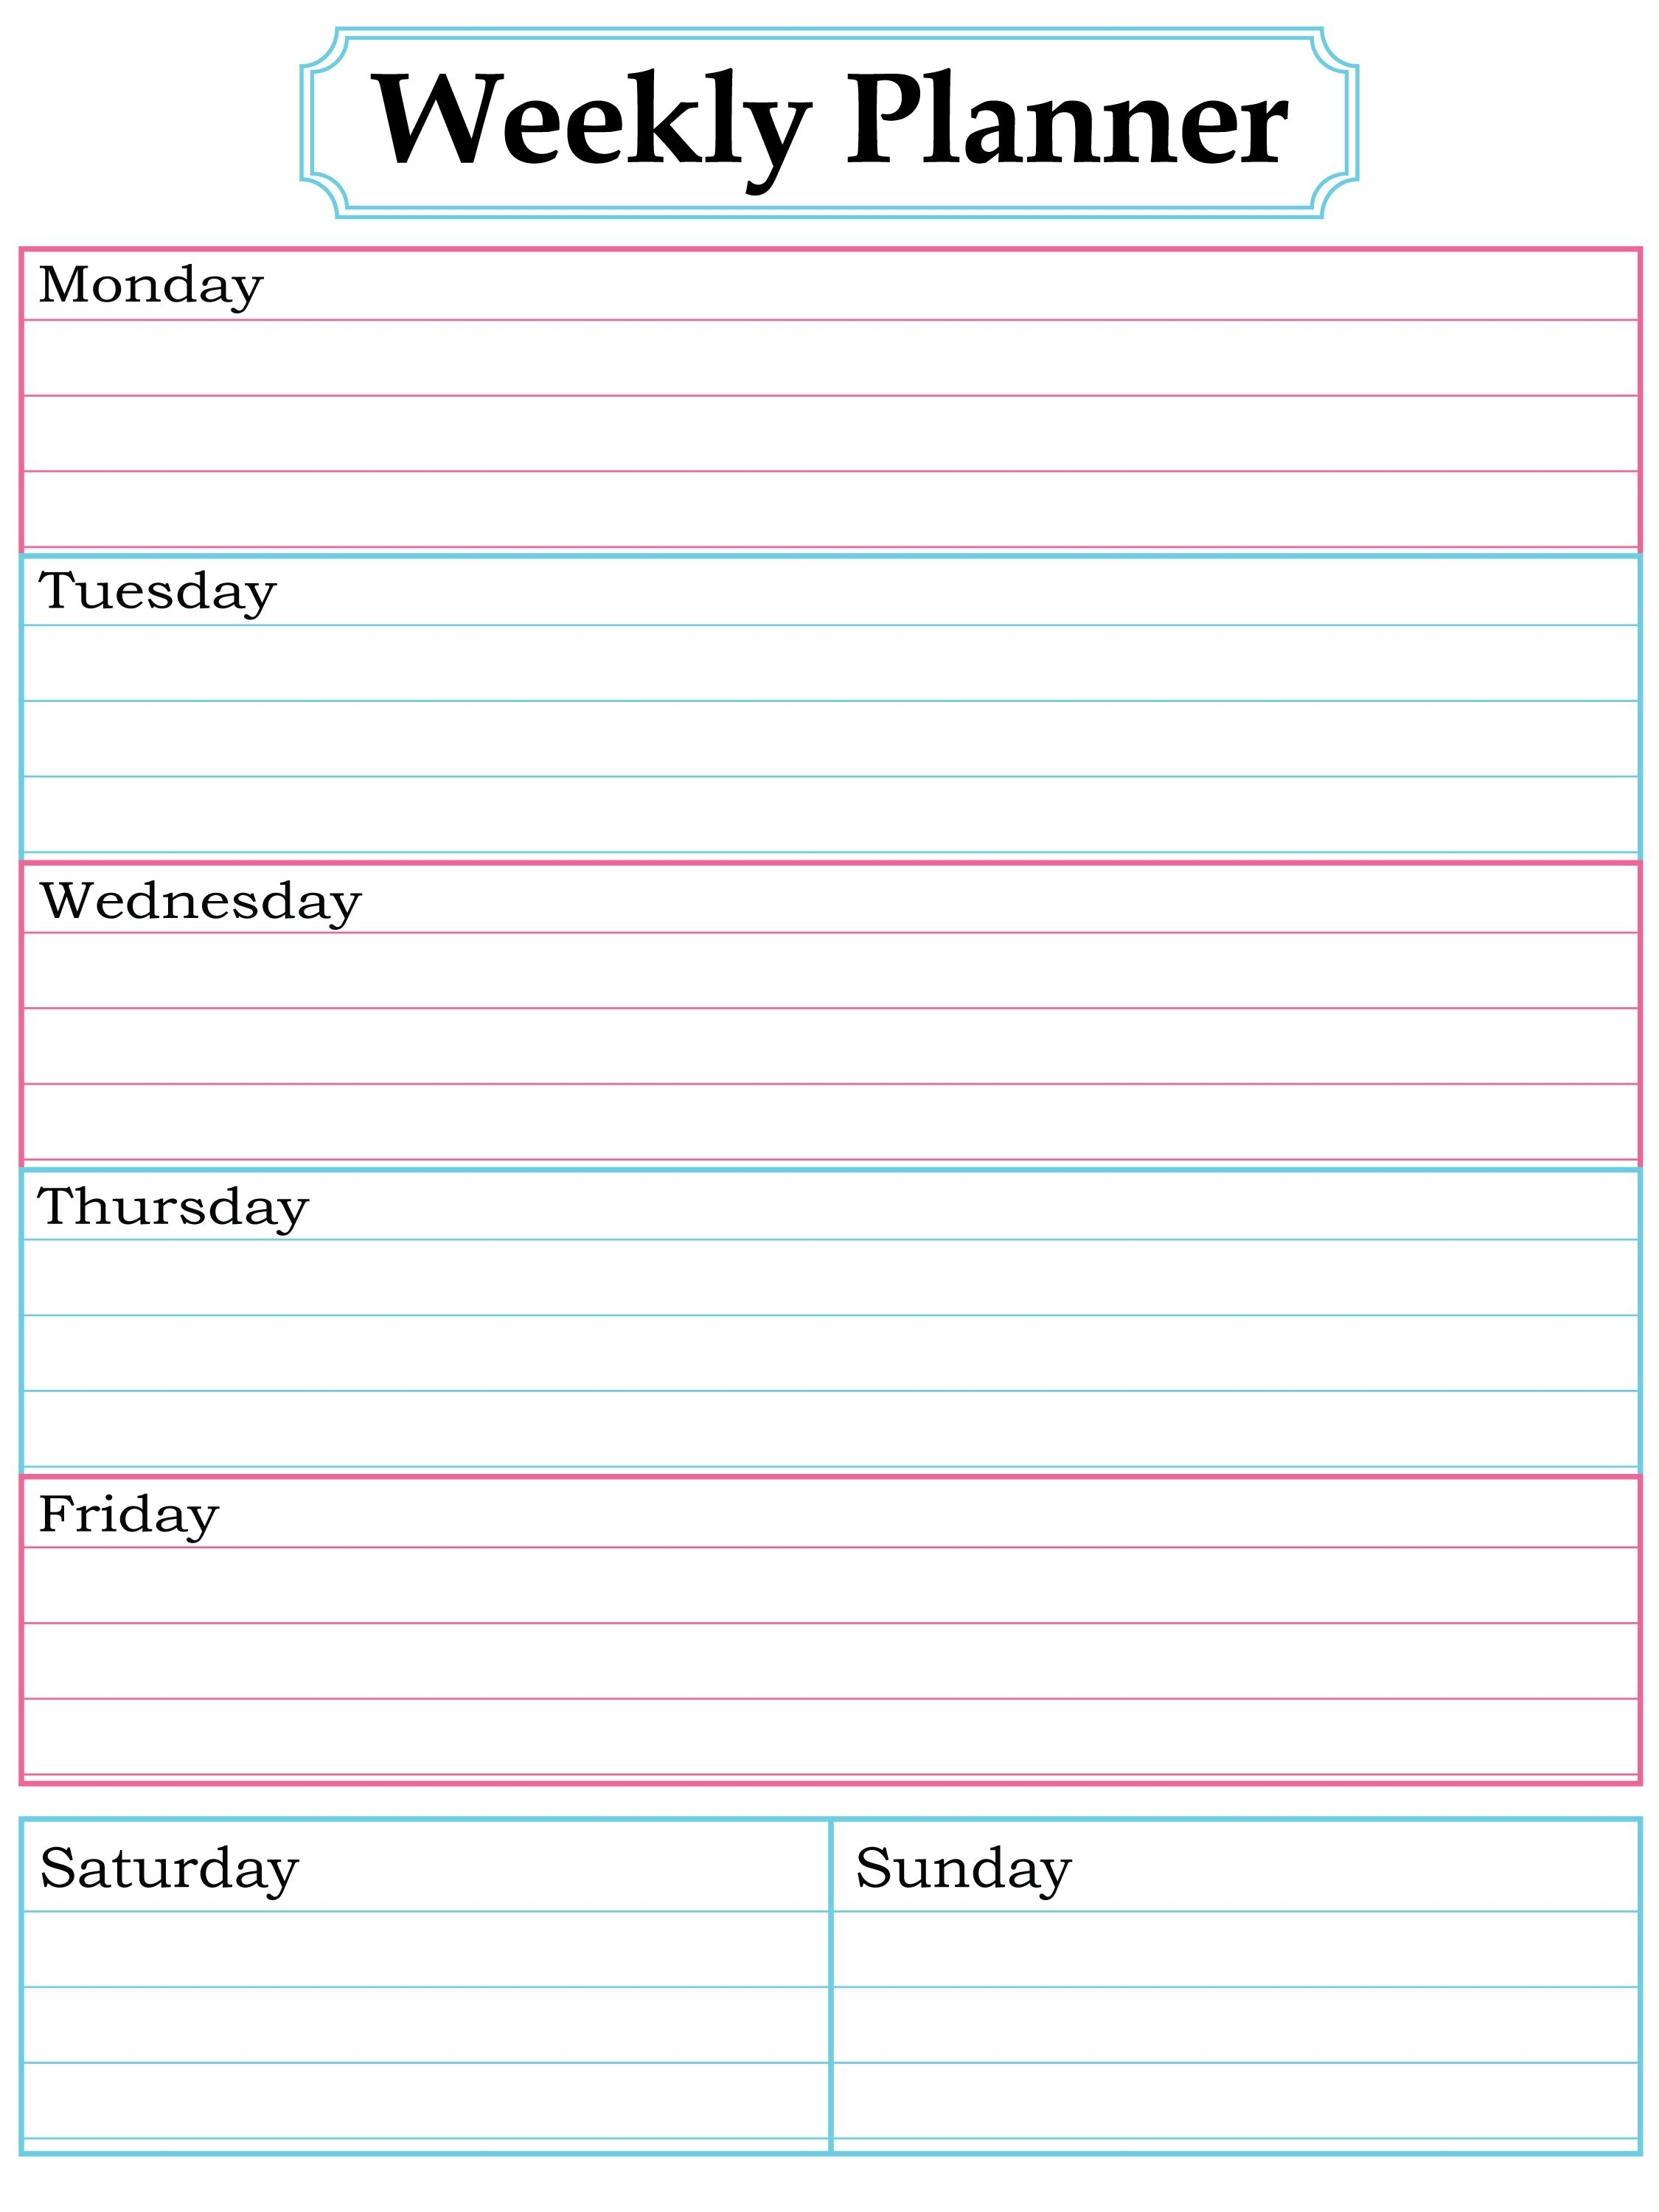 photo regarding Weekly Planner Page called Weekly Planner Web page June 2016 Weekly planner template